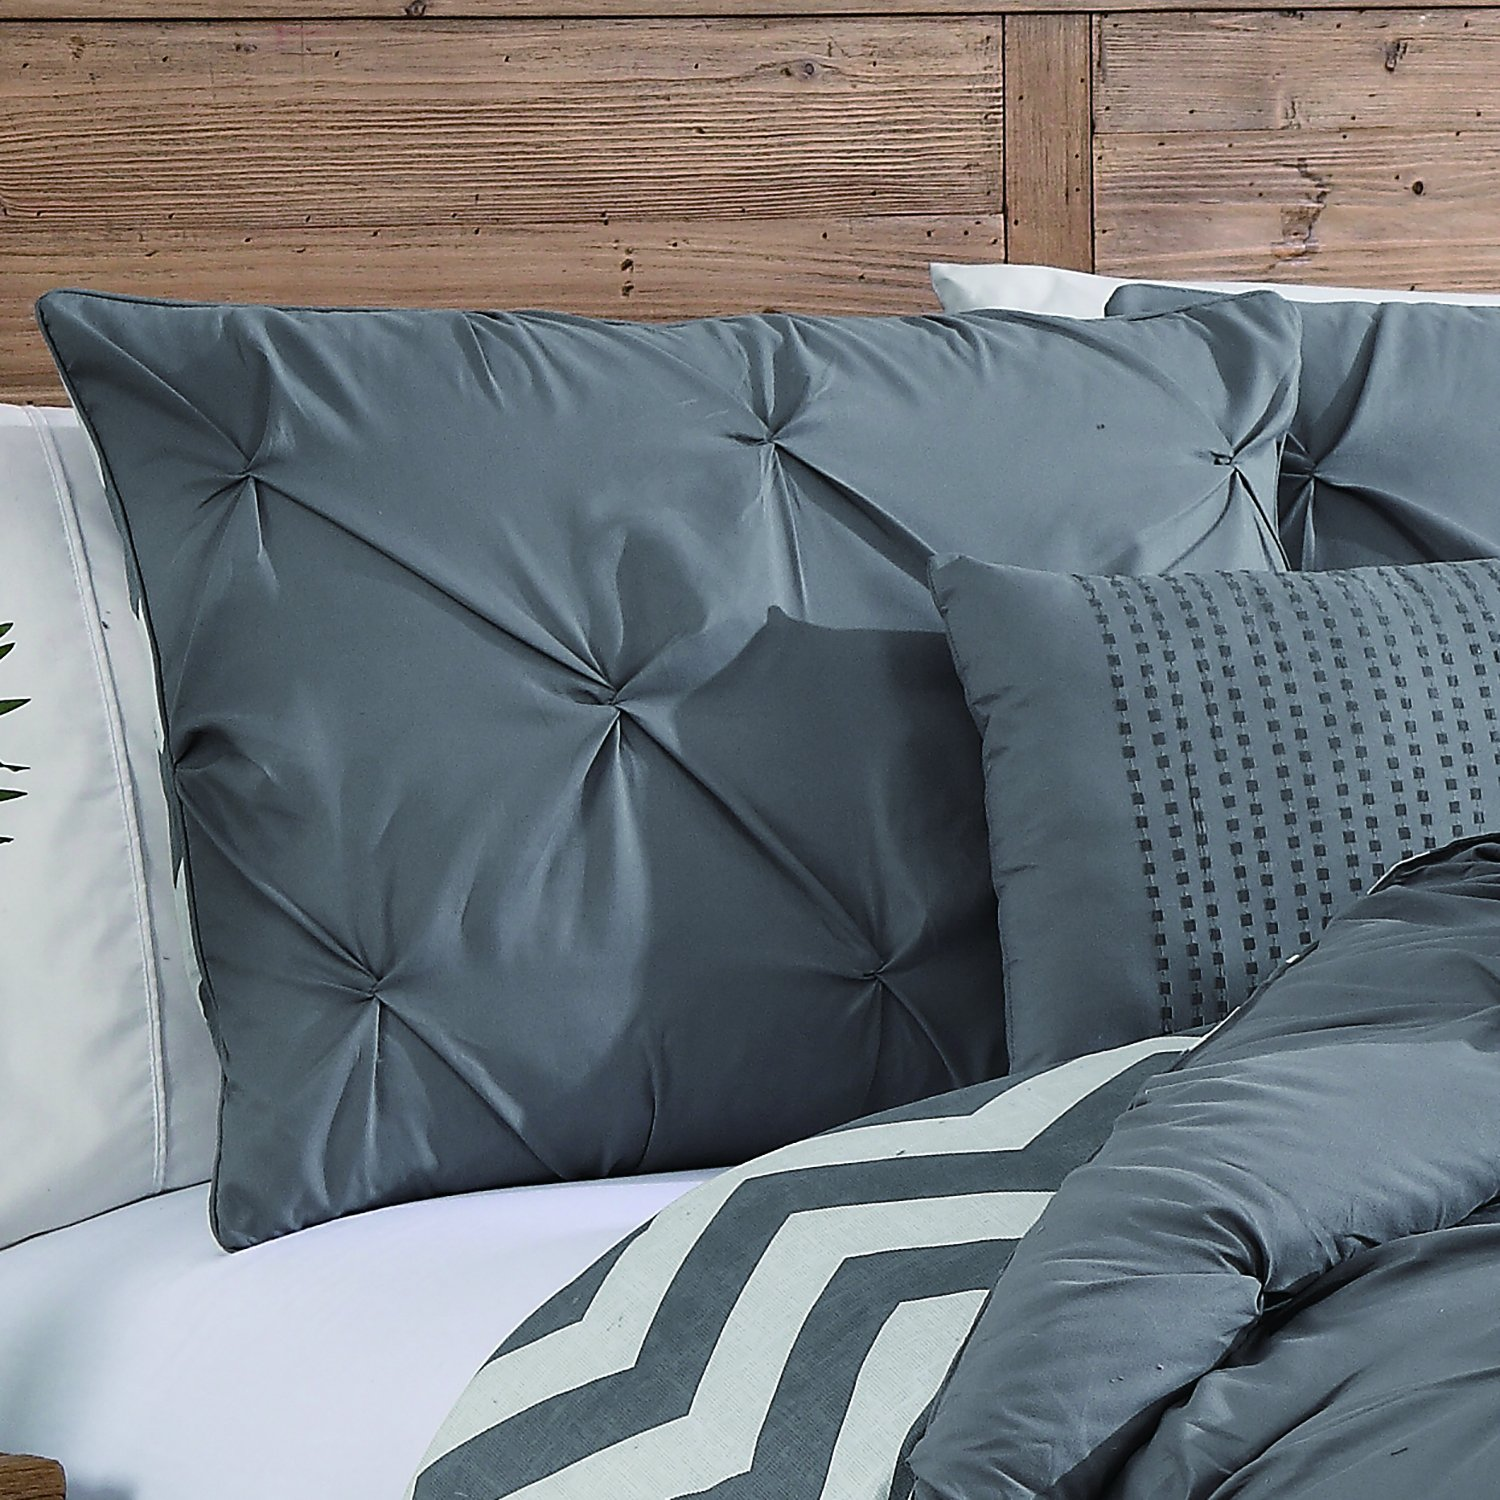 comforter bedding home pleat product overfilled free piece overstock oversized pinch reversible set chic shipping trefort today bath